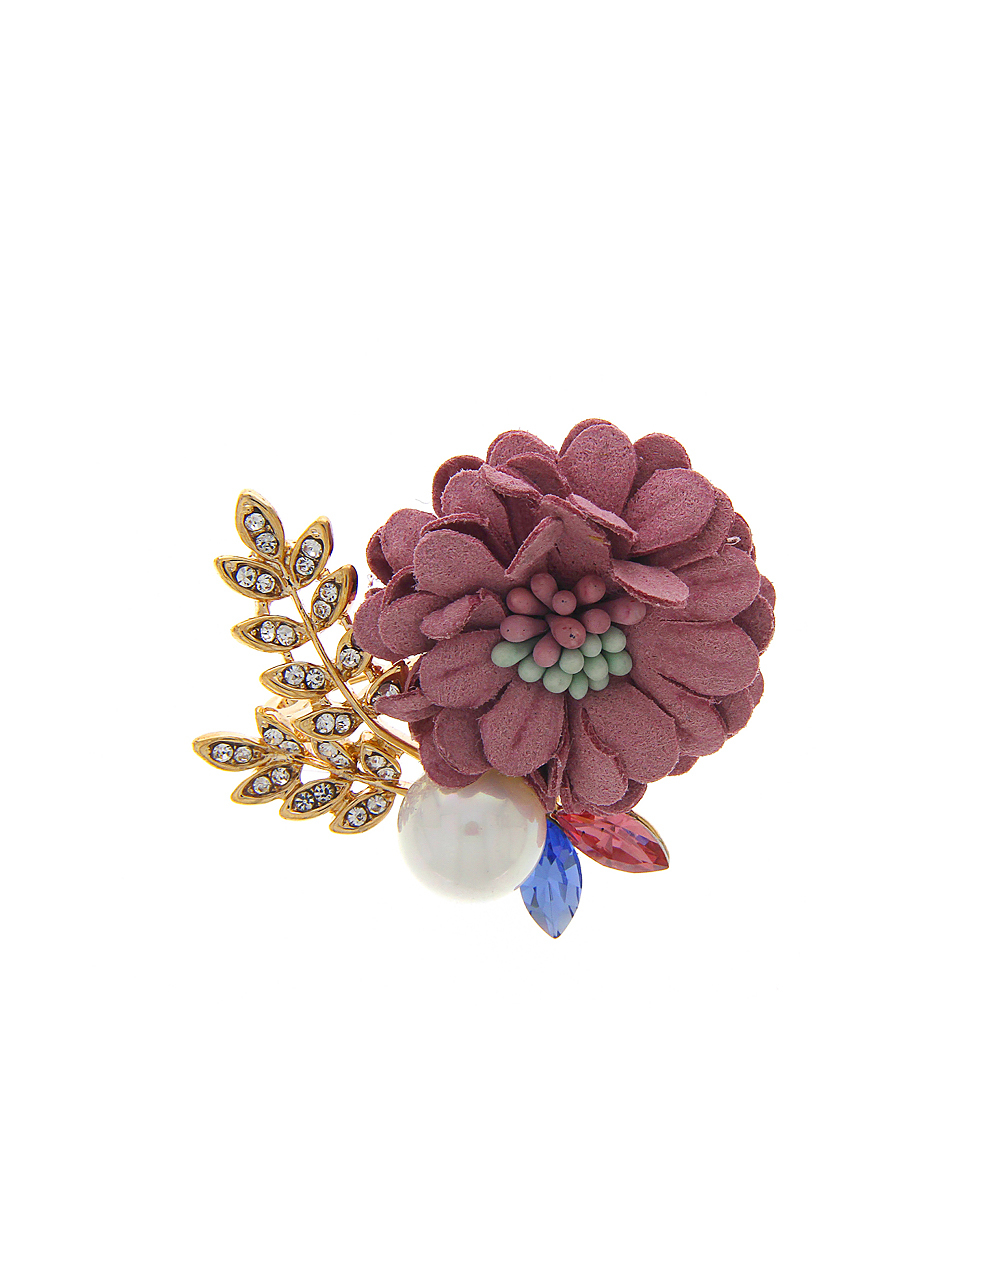 Pink Floral Brooch Styled With Sparkling Stones and Beads